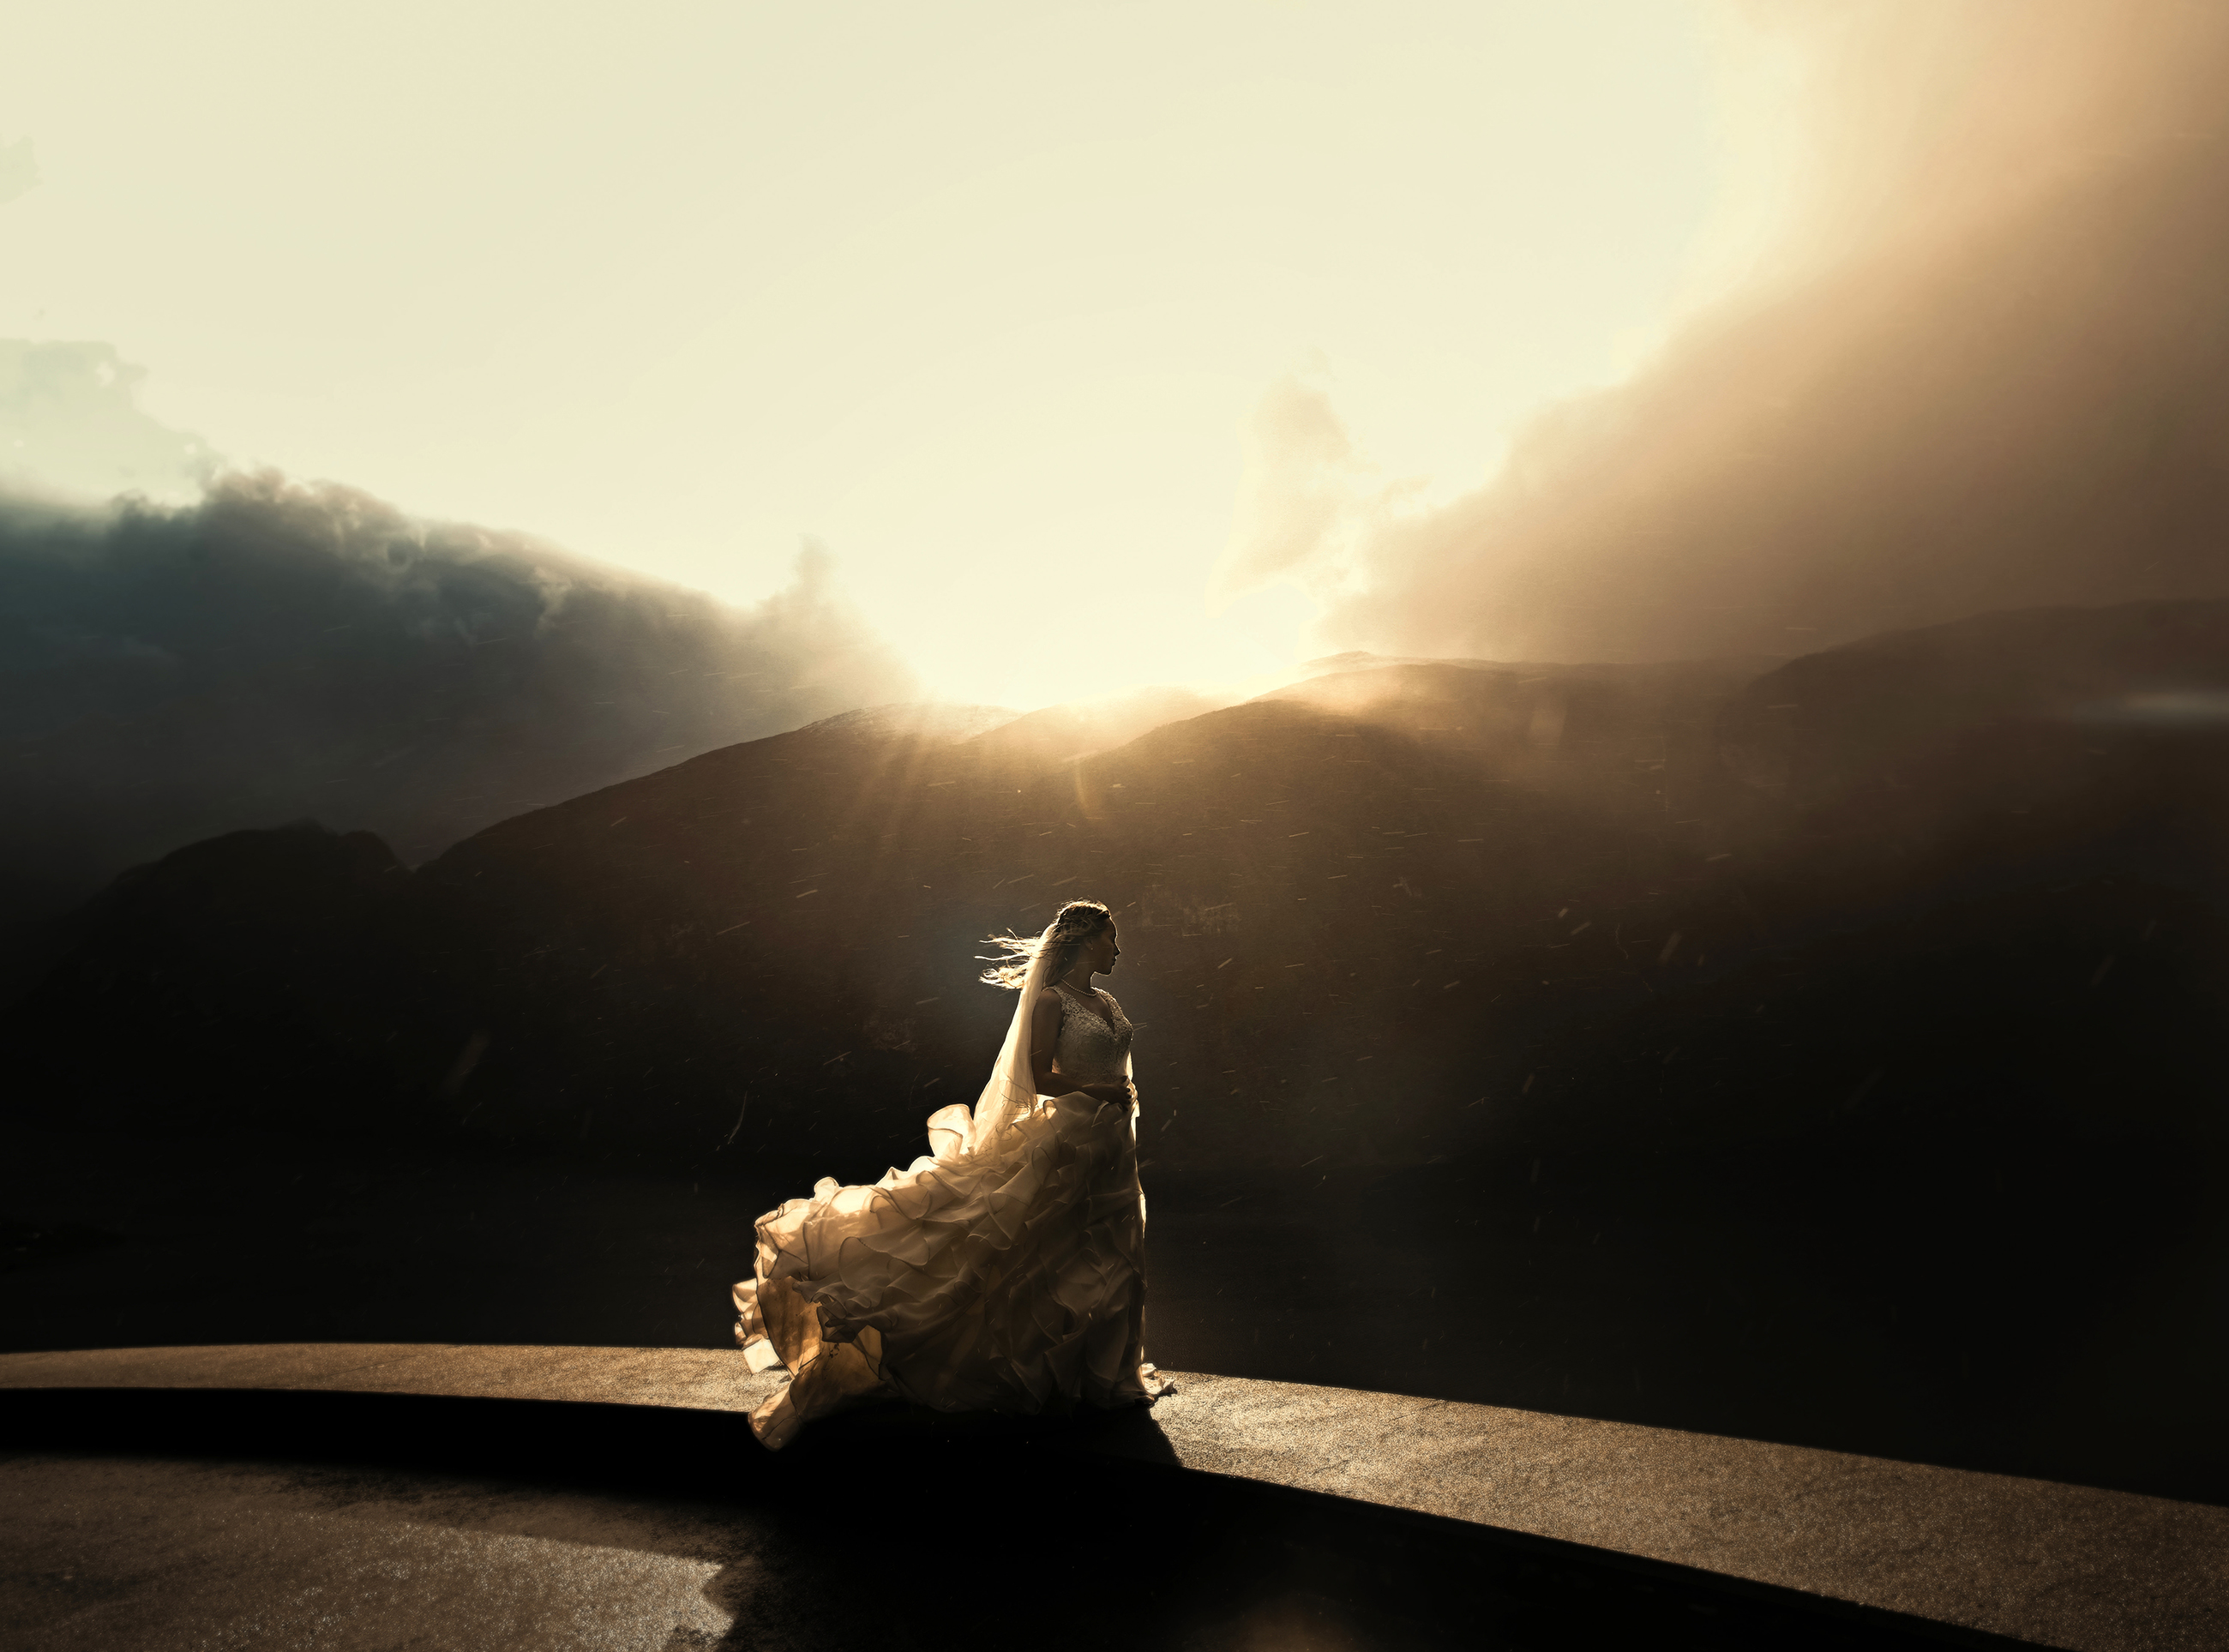 Painterly bride portrait against dramatic mountain lighting  - photo by Frøydis